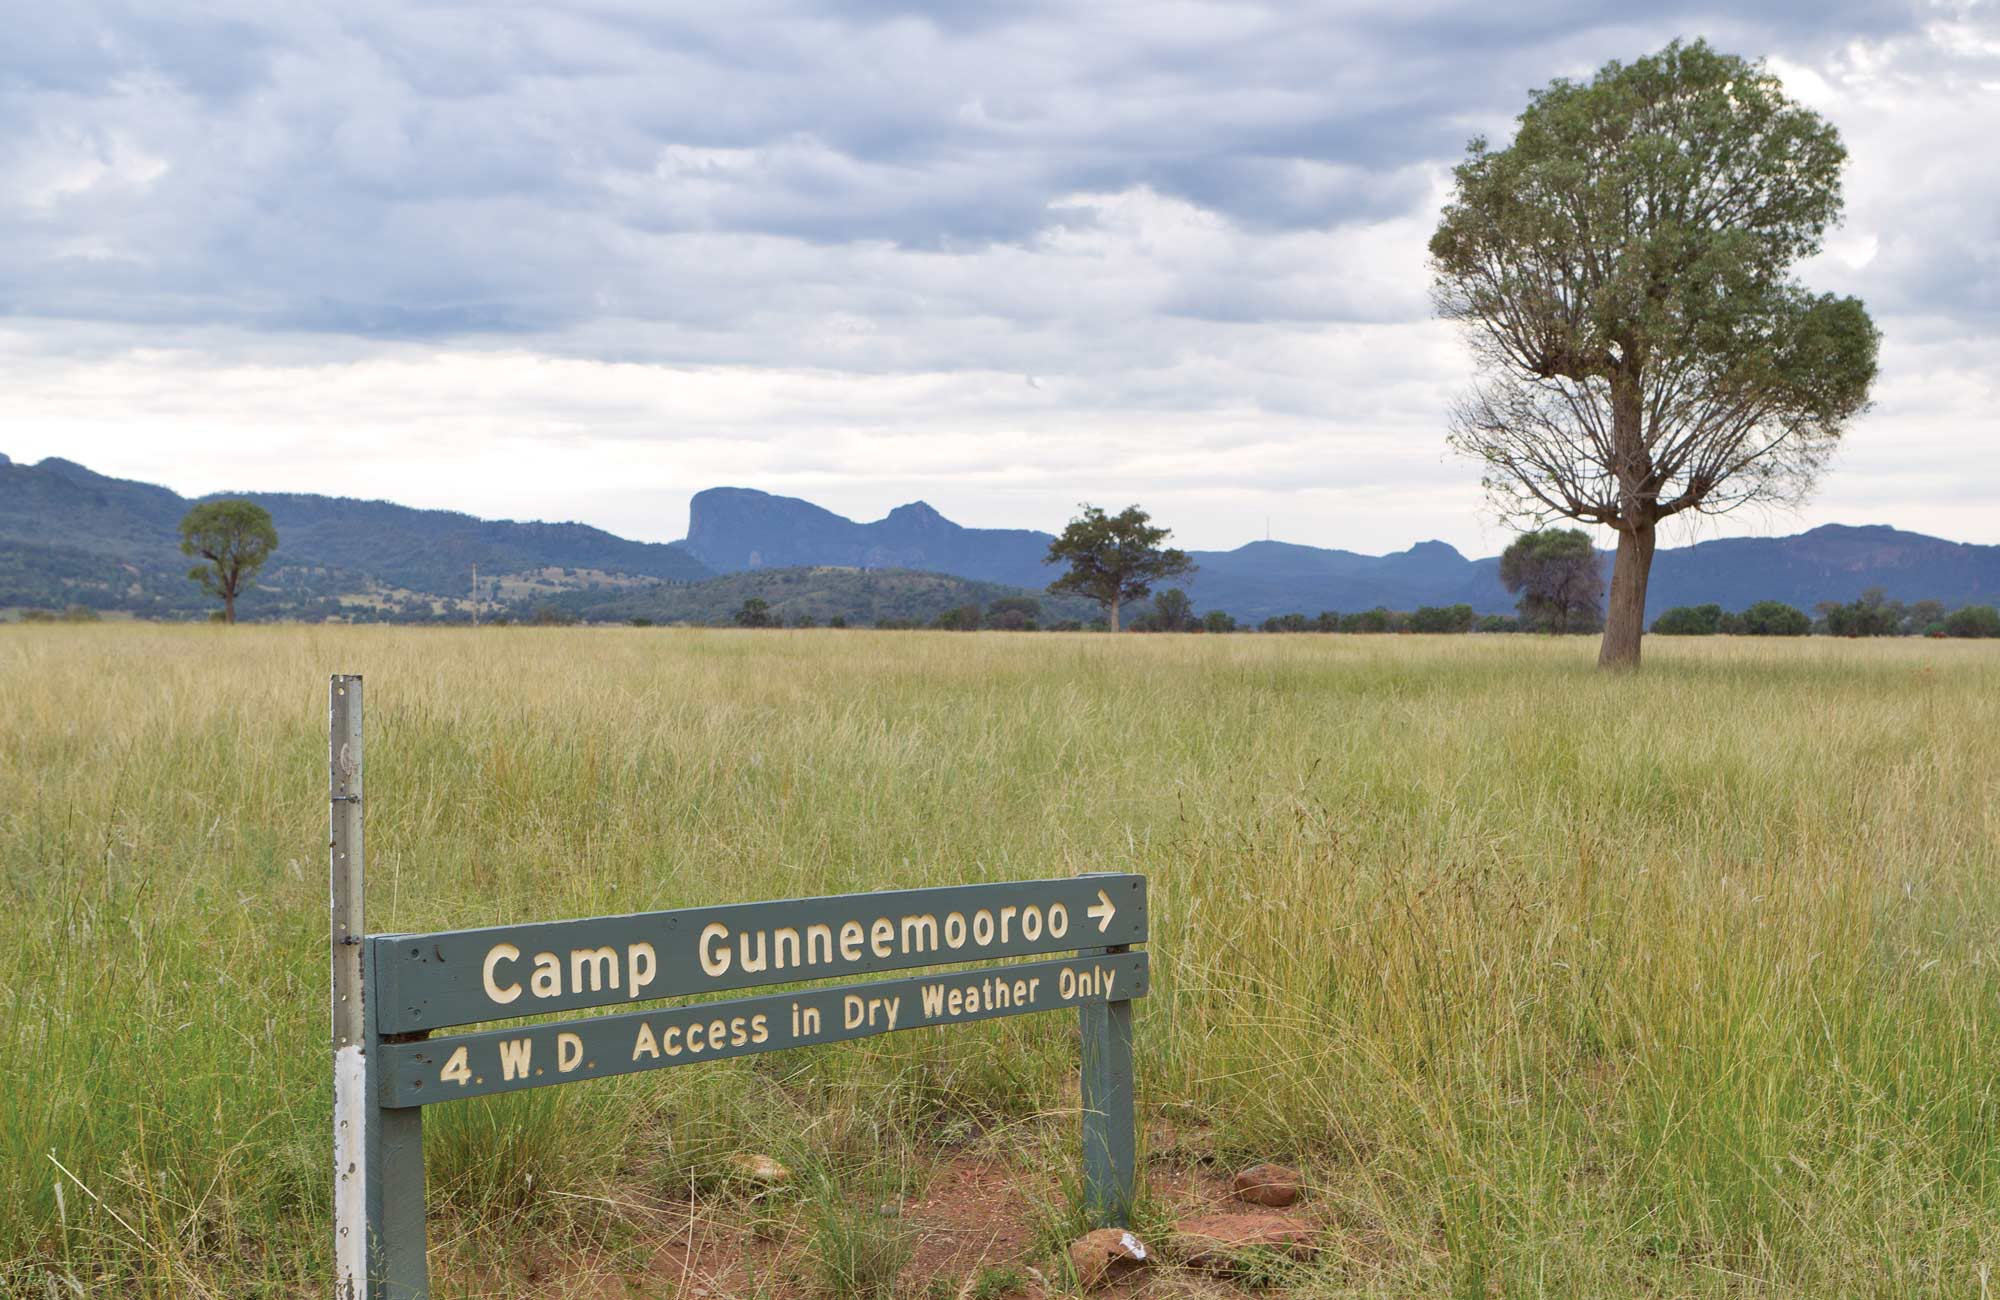 Camp Gunneemooroo, Warrumbungle National Park. Photo: Rob Cleary/NSW Government